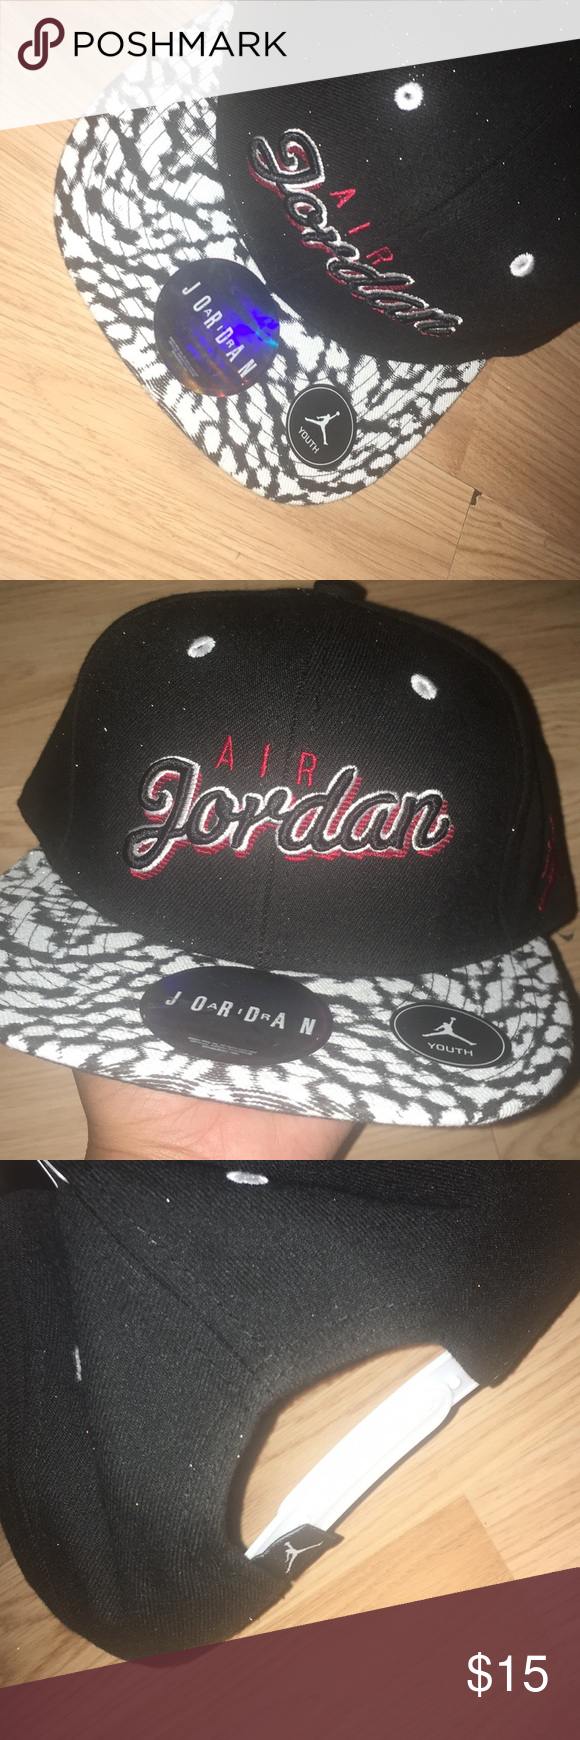 3f175b5c14515 ... cap red black review video dailymotion d0d14 0d49c  ireland air jordan  youth hat brand new this brand new air jordan youth hat is perfect